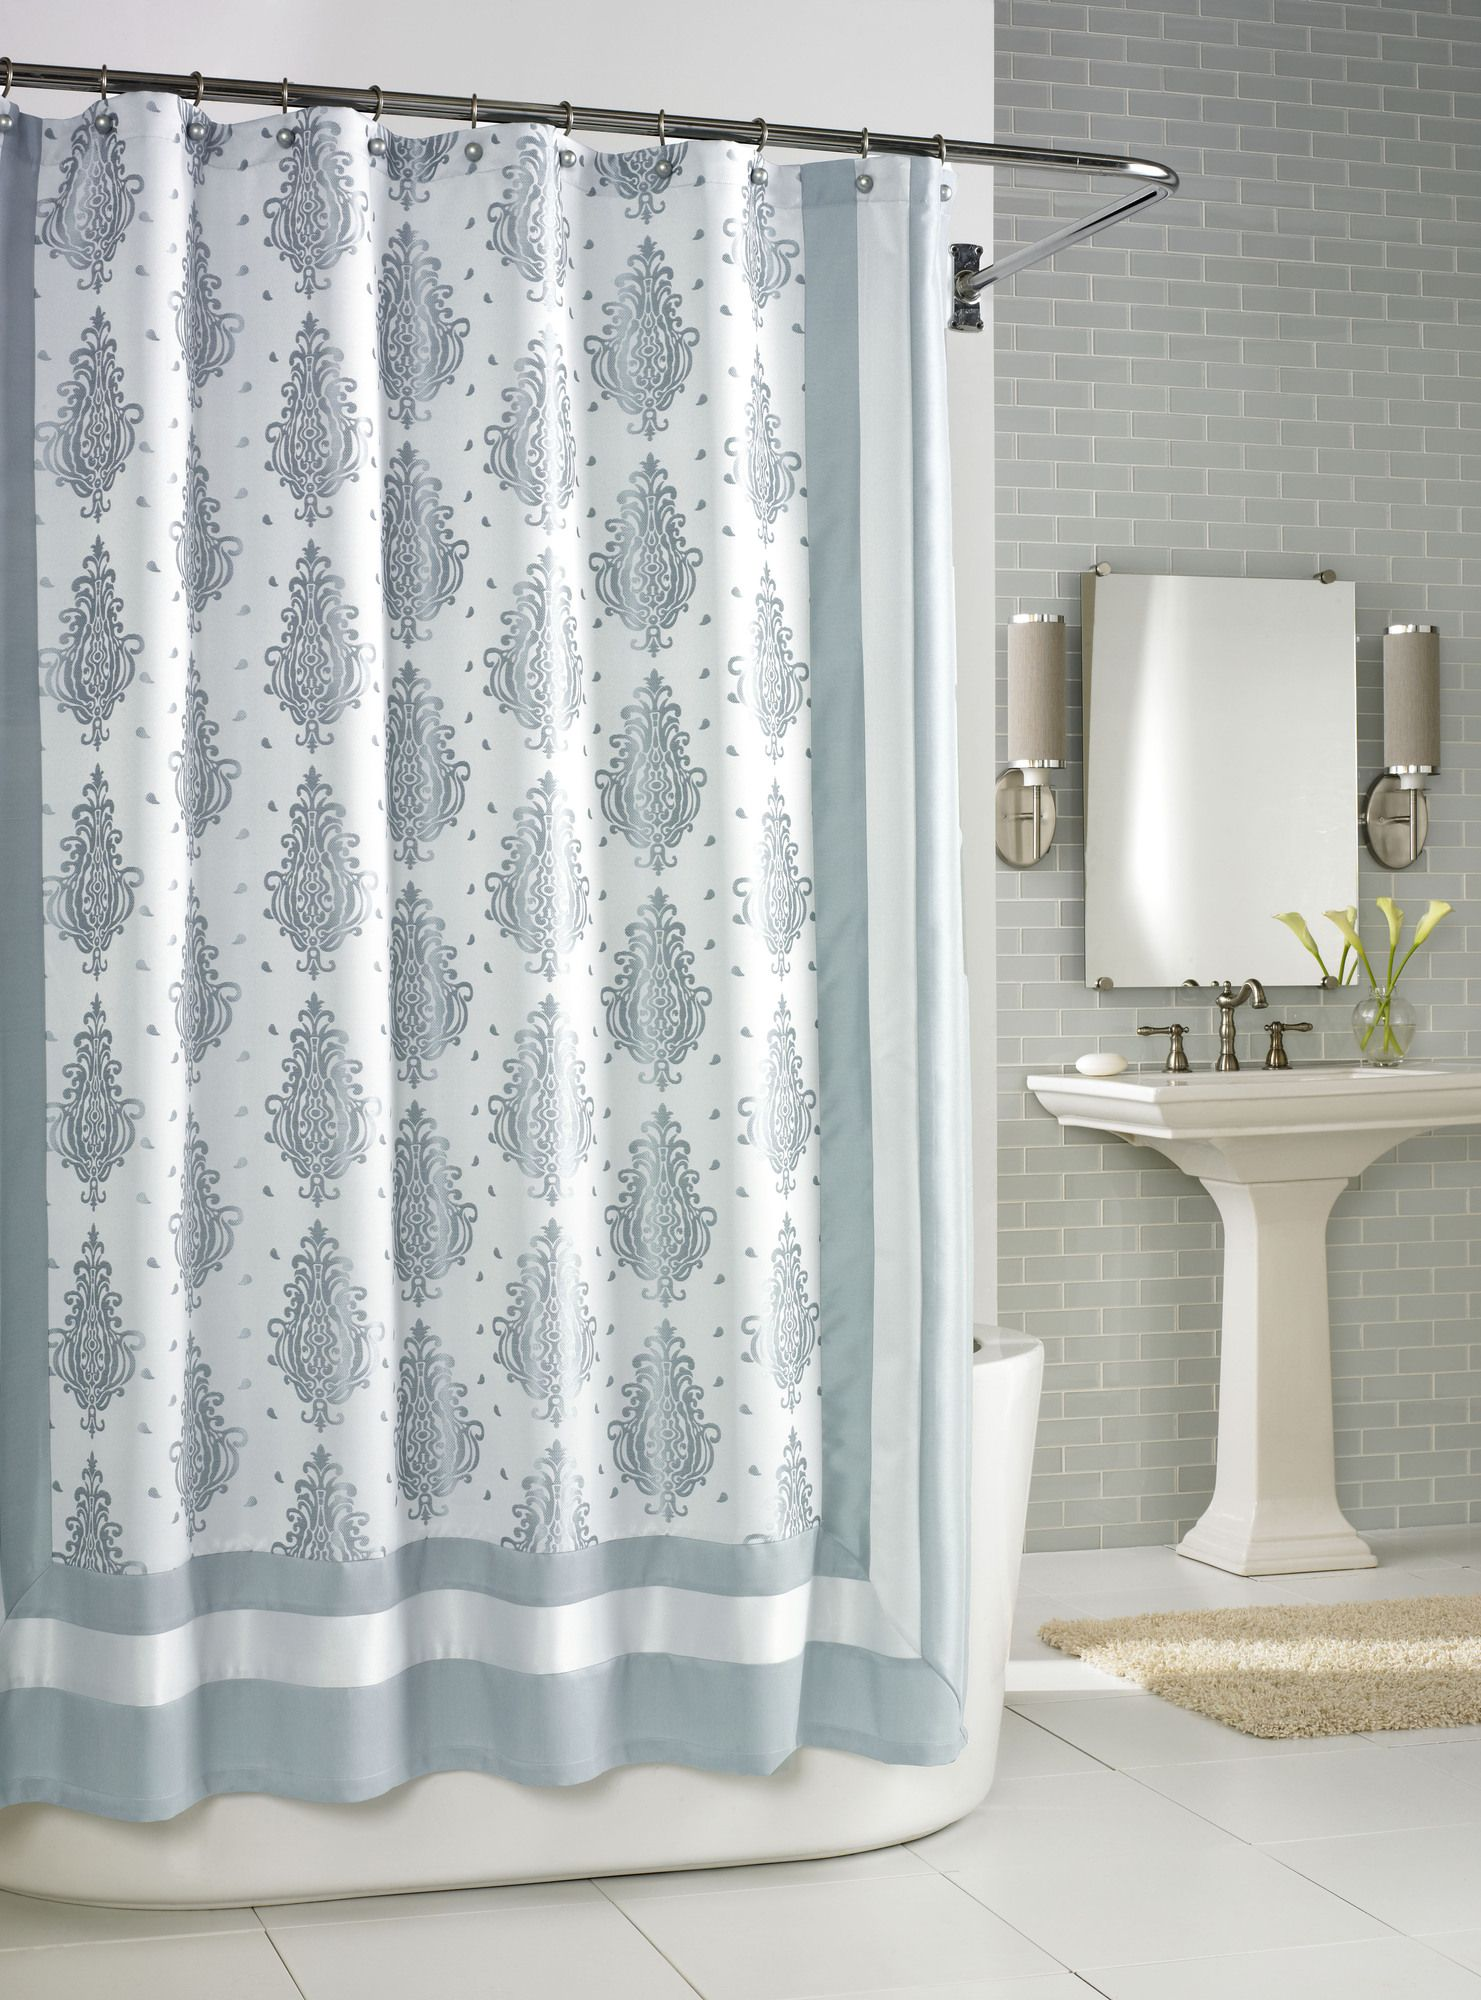 Kassatex Roma Shower Curtain in Seafoam | Home: Bathrooms ...